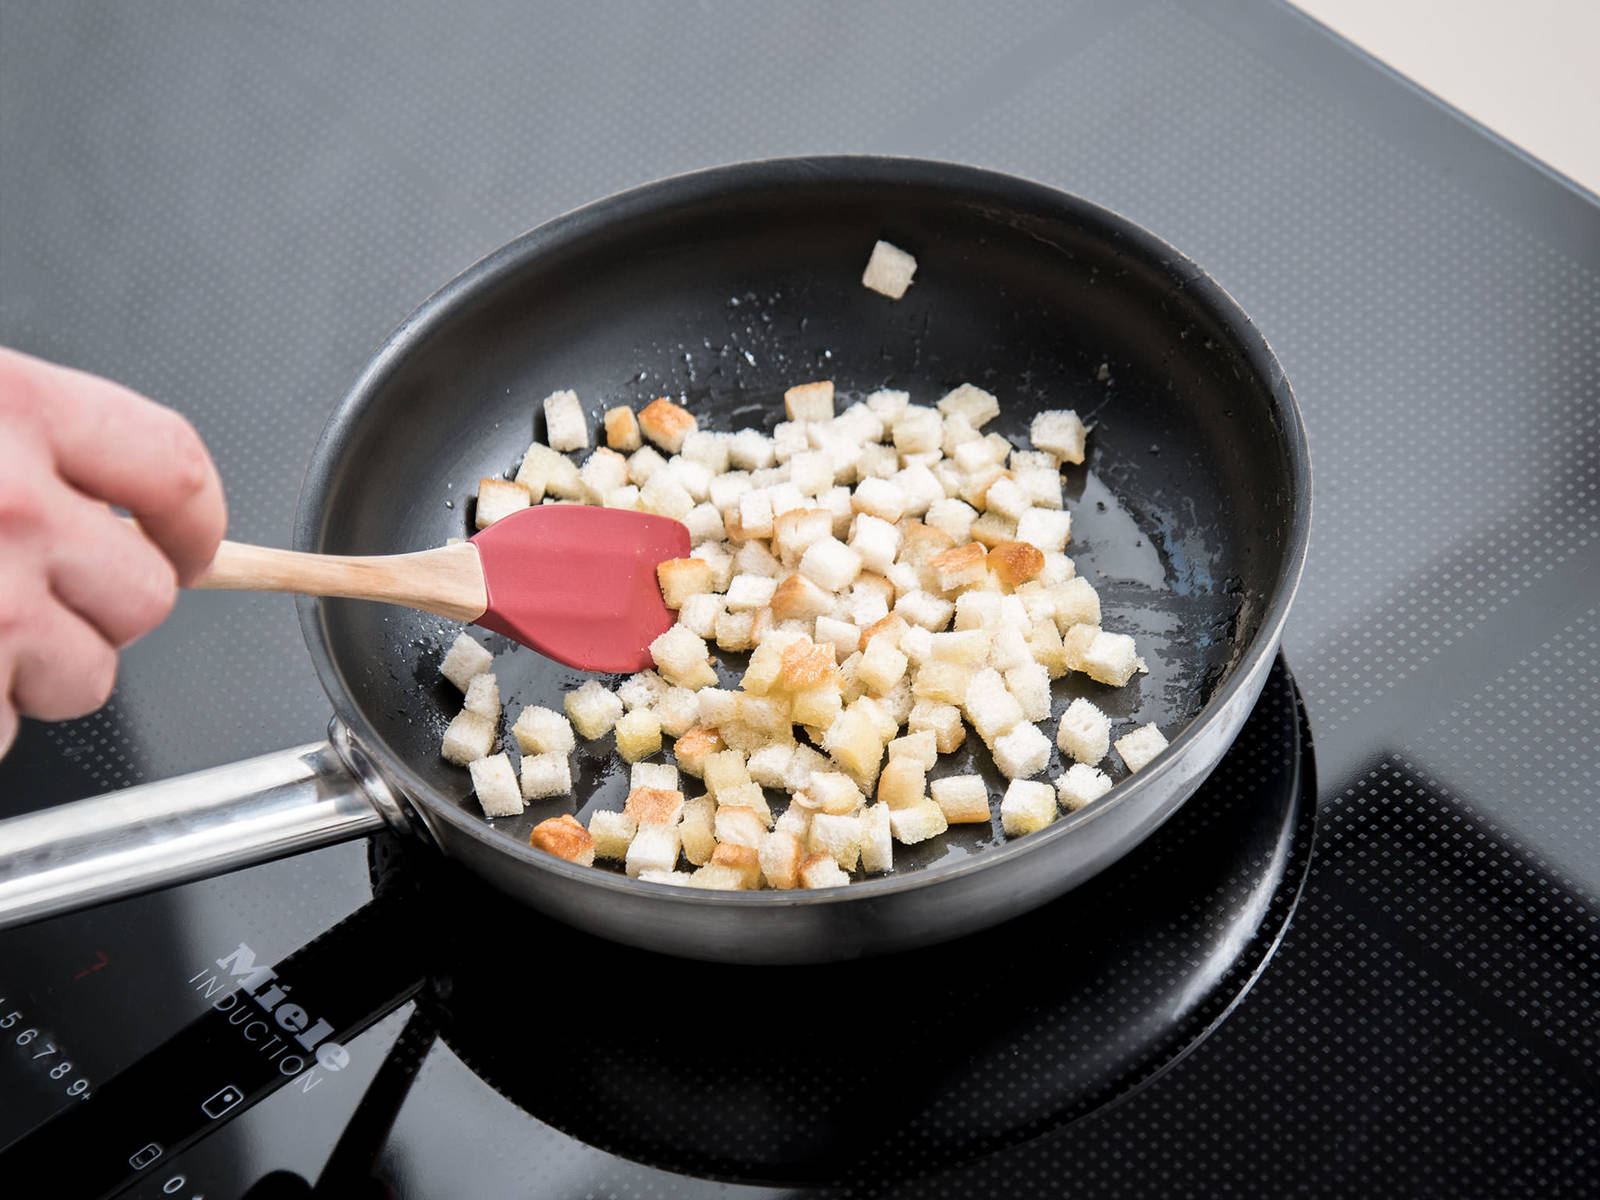 Add olive oil and butter to a frying pan set over medium-high heat. Add bread cubes and fry until golden brown. Season with salt and pepper.